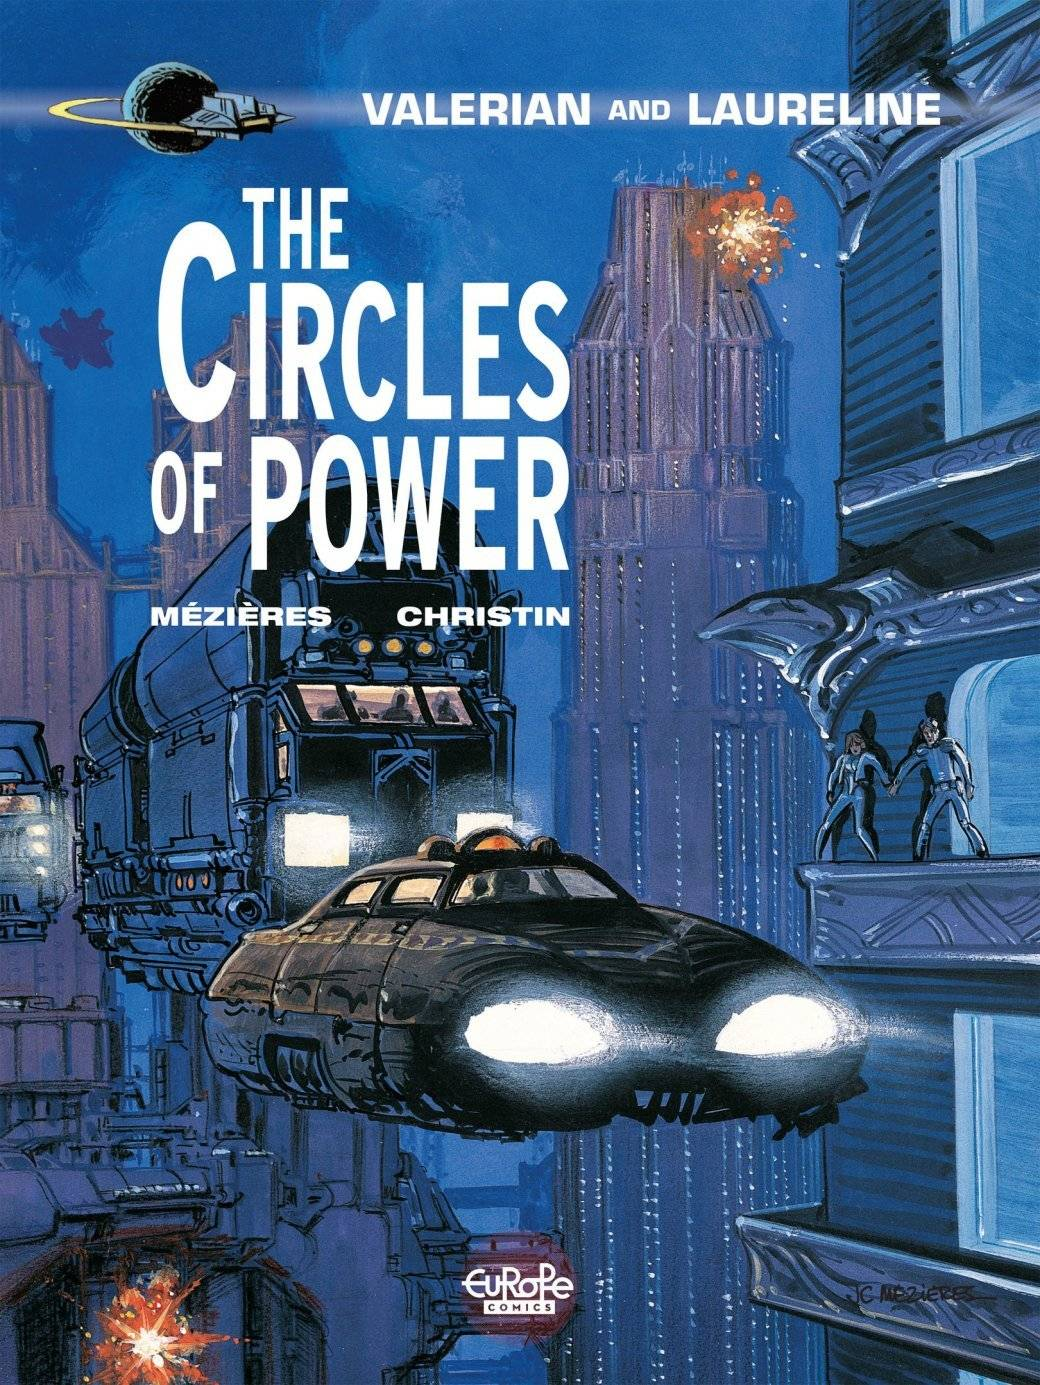 The Cirles of power Валериан и Лорелин - Stone Forest